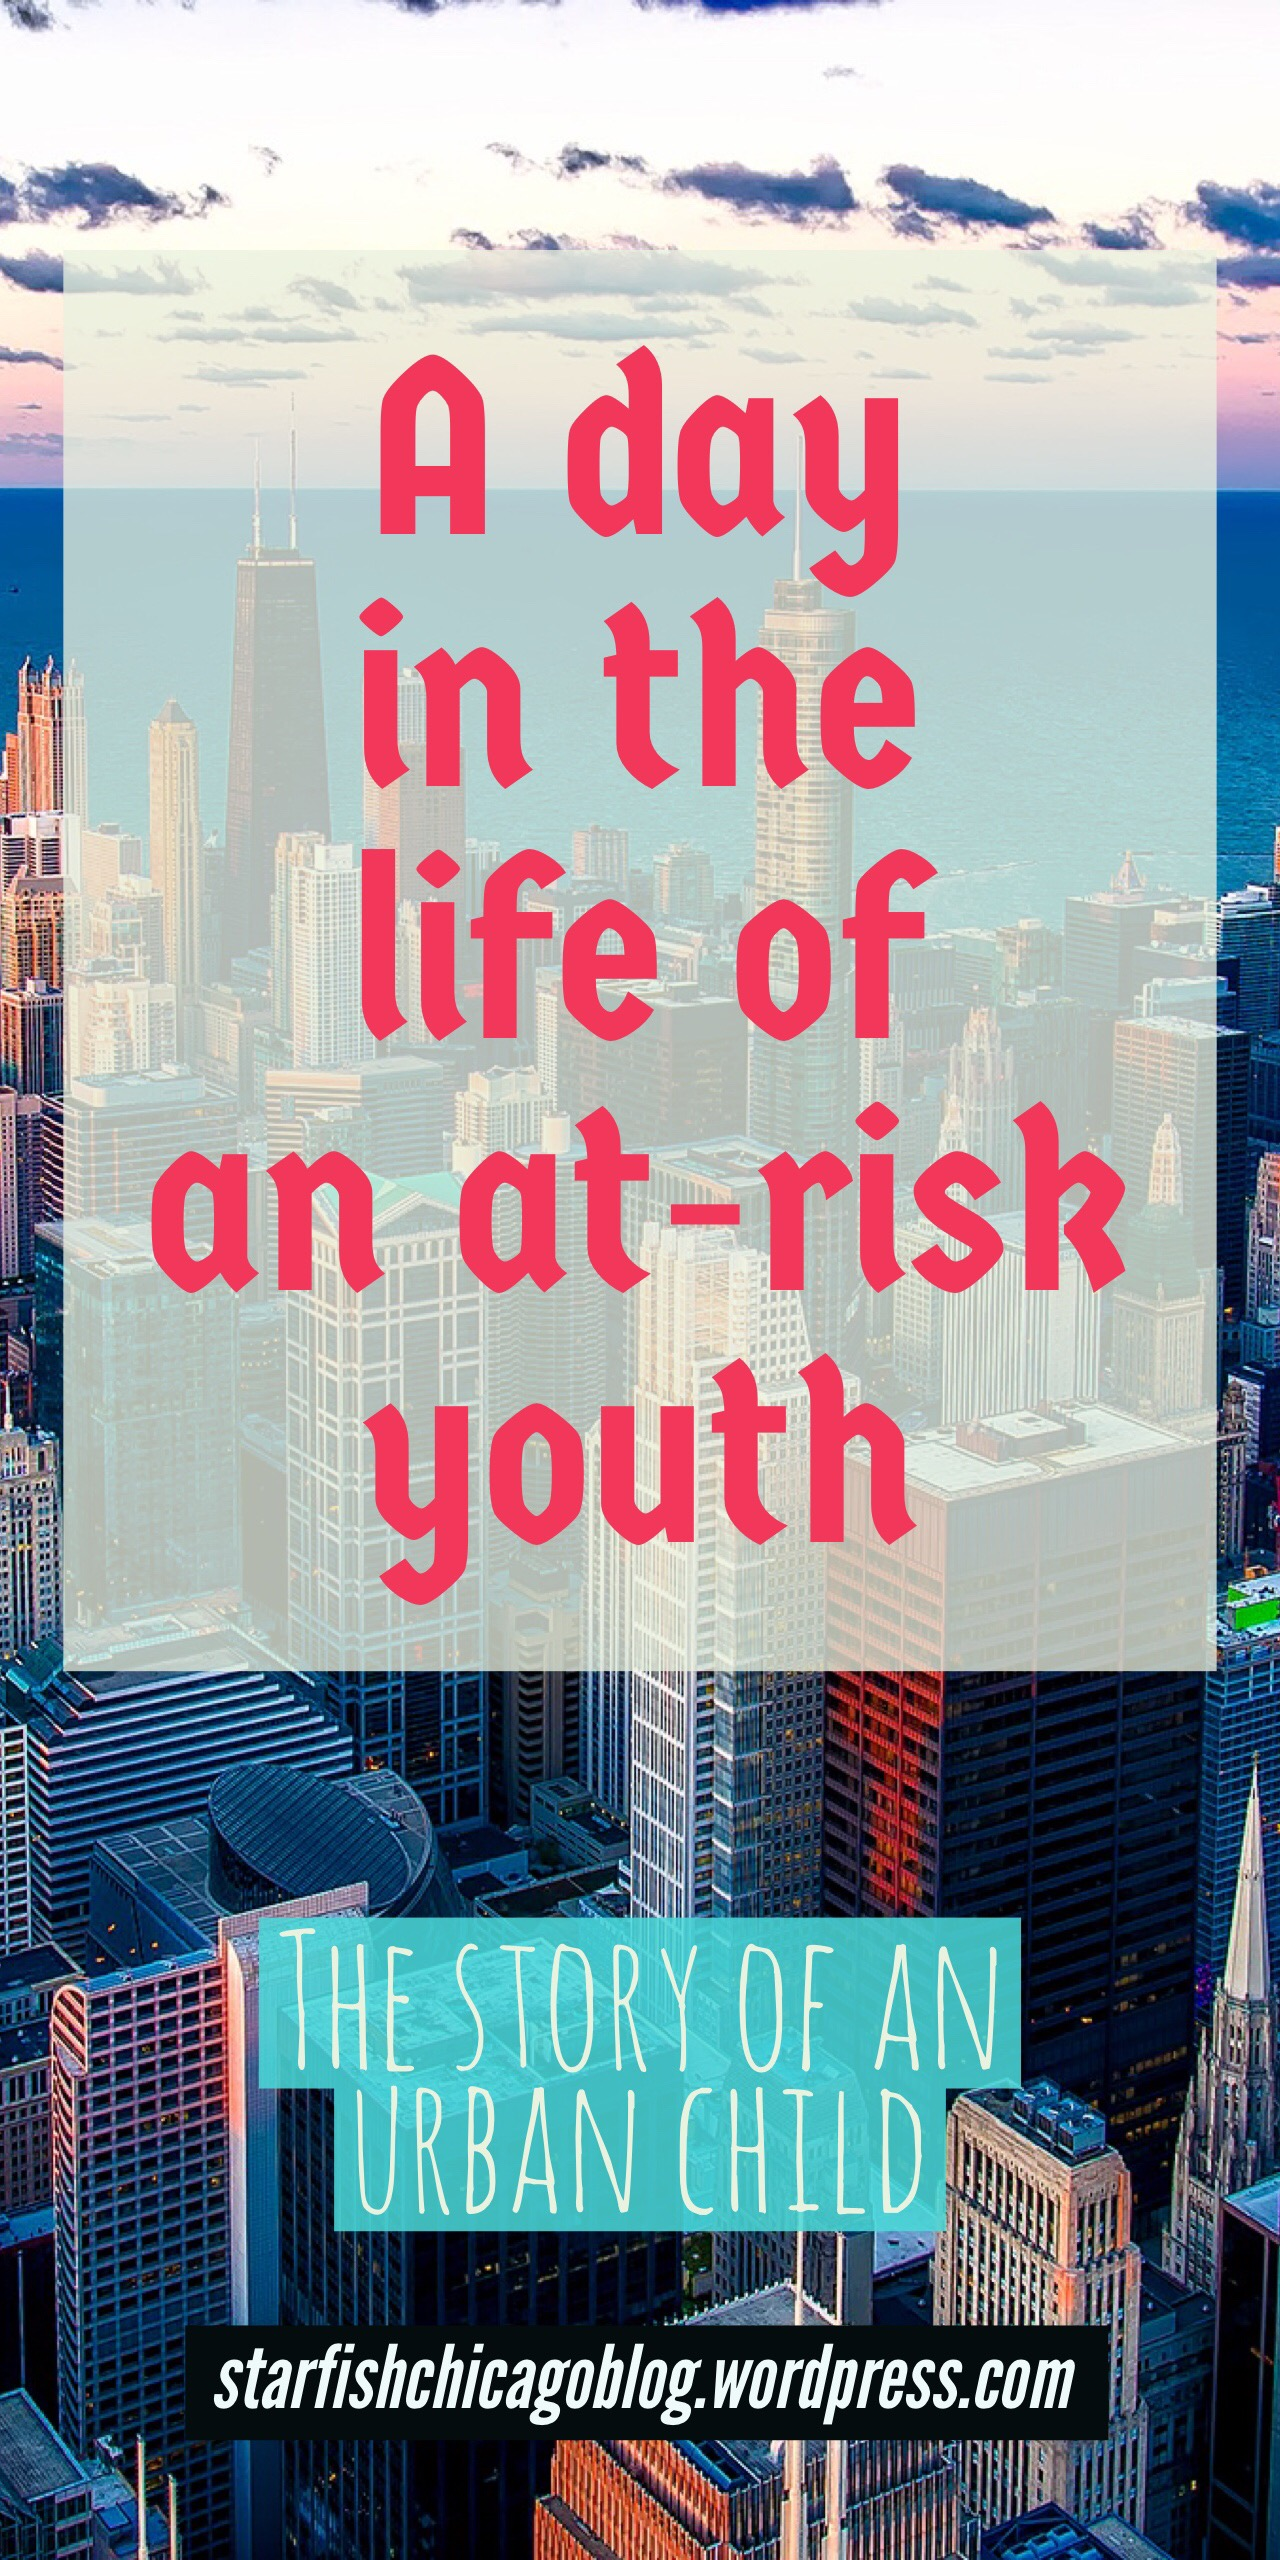 A day in the life of an at-risk youth: the story of today's inner city kids. Learn how you can help change their future. Read it at starfishchicagoblog.wordpress.com.